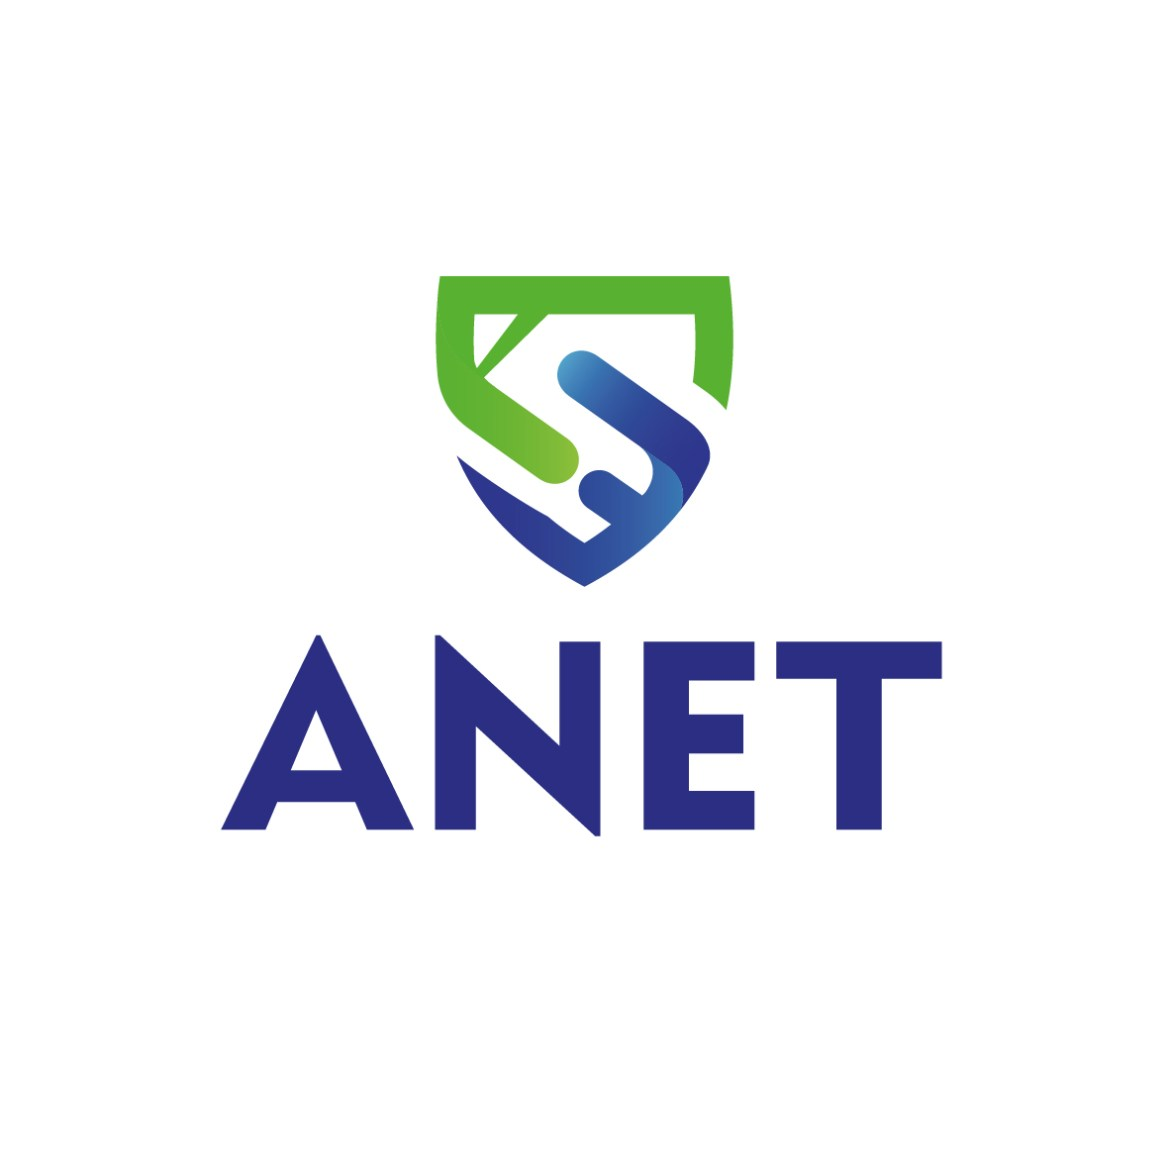 ANET Software